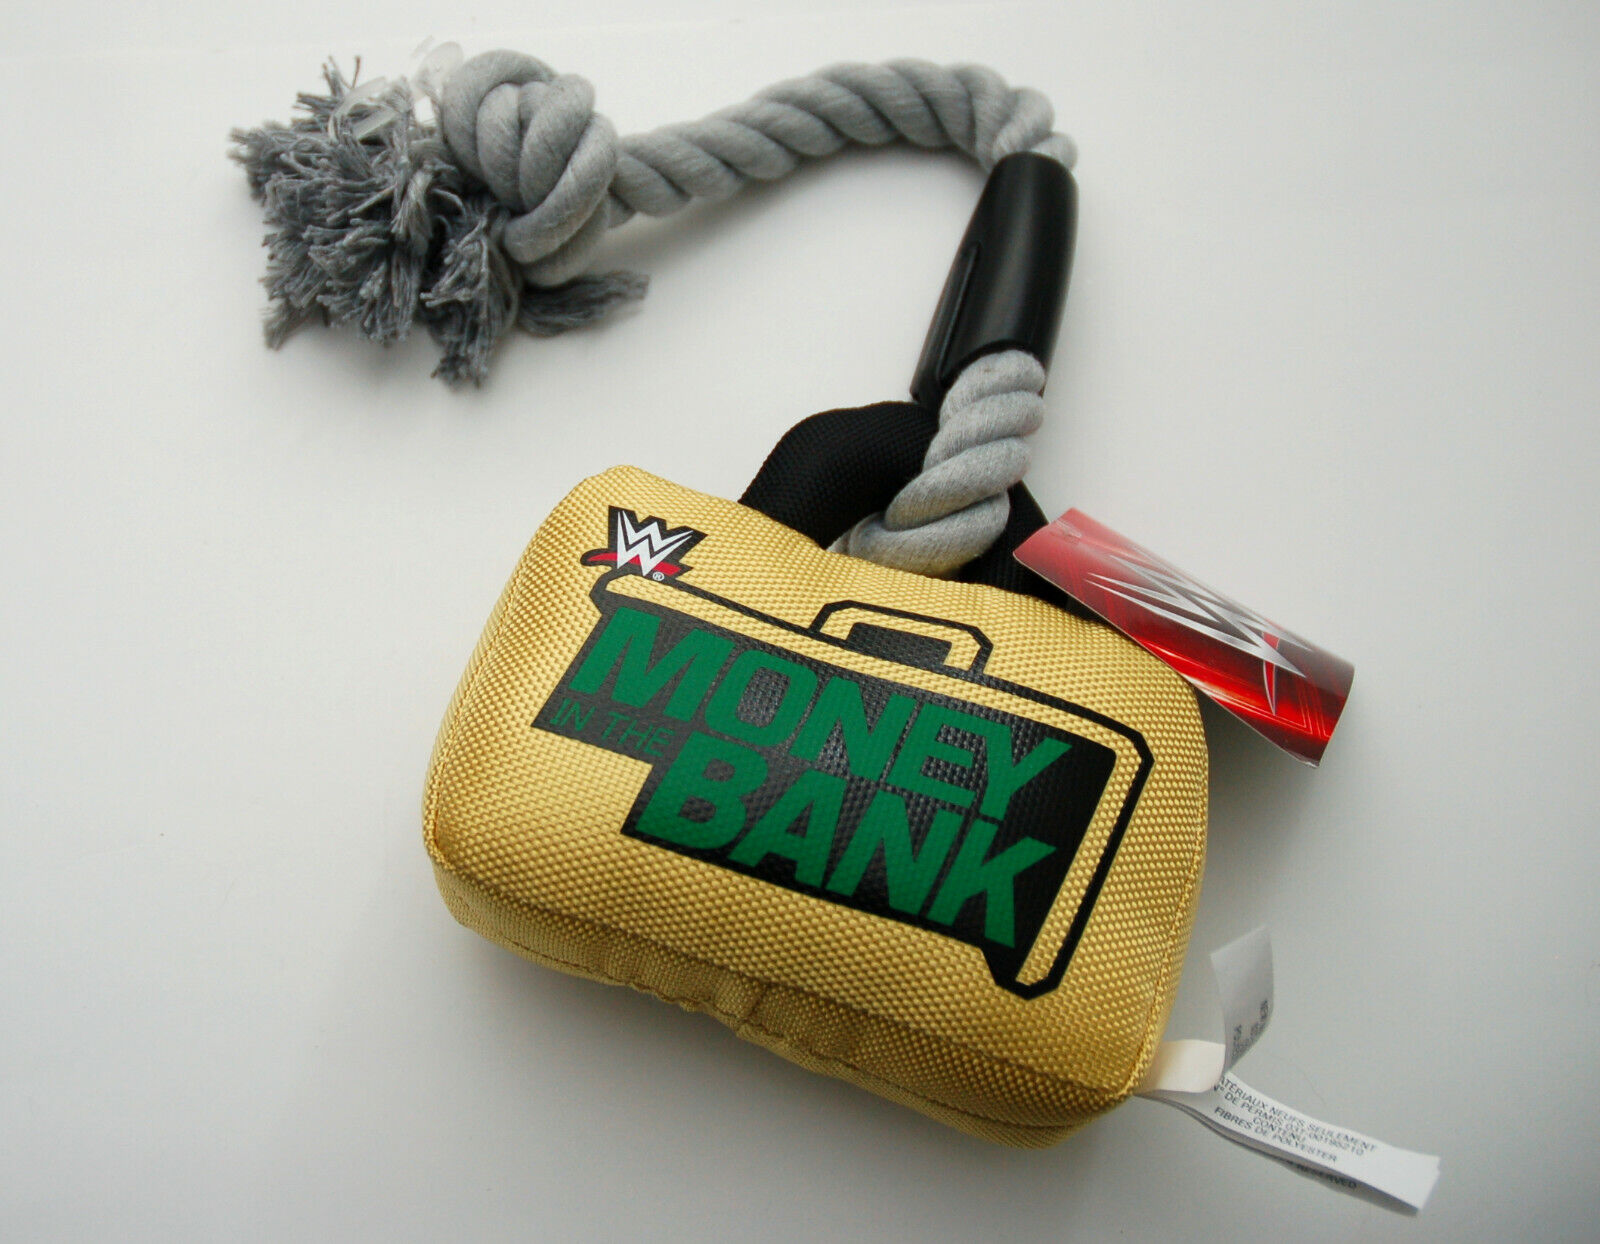 official wwe money in the bank dog